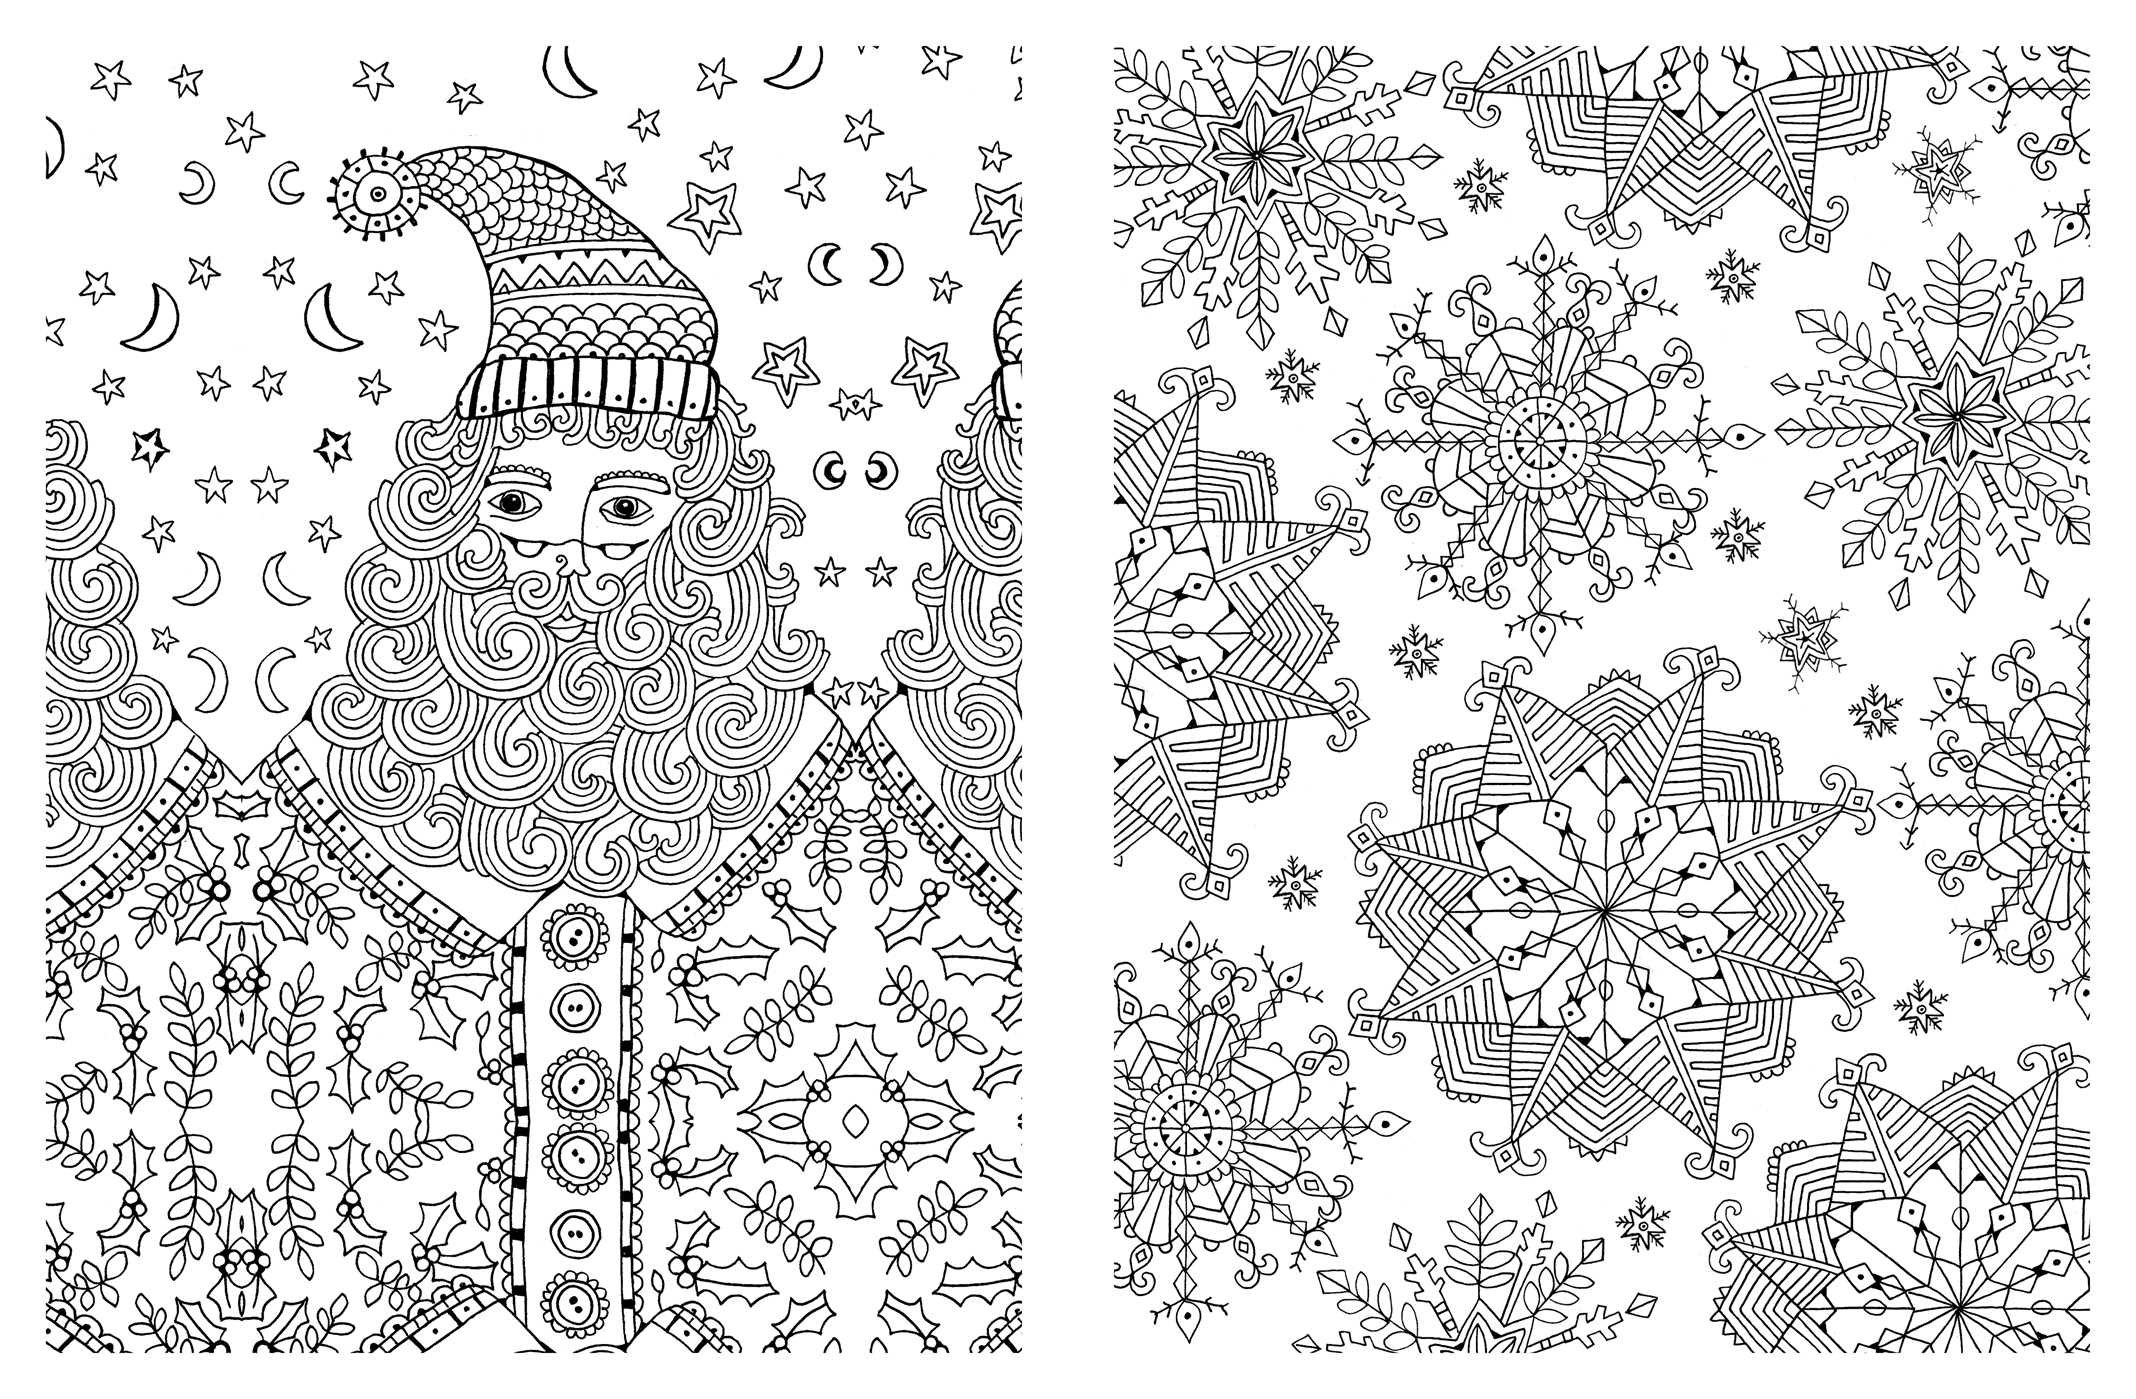 Amazon Posh Adult Coloring Book Christmas Designs For Fun Relaxation Books 0842988126750 Andrews McMeel Publishing